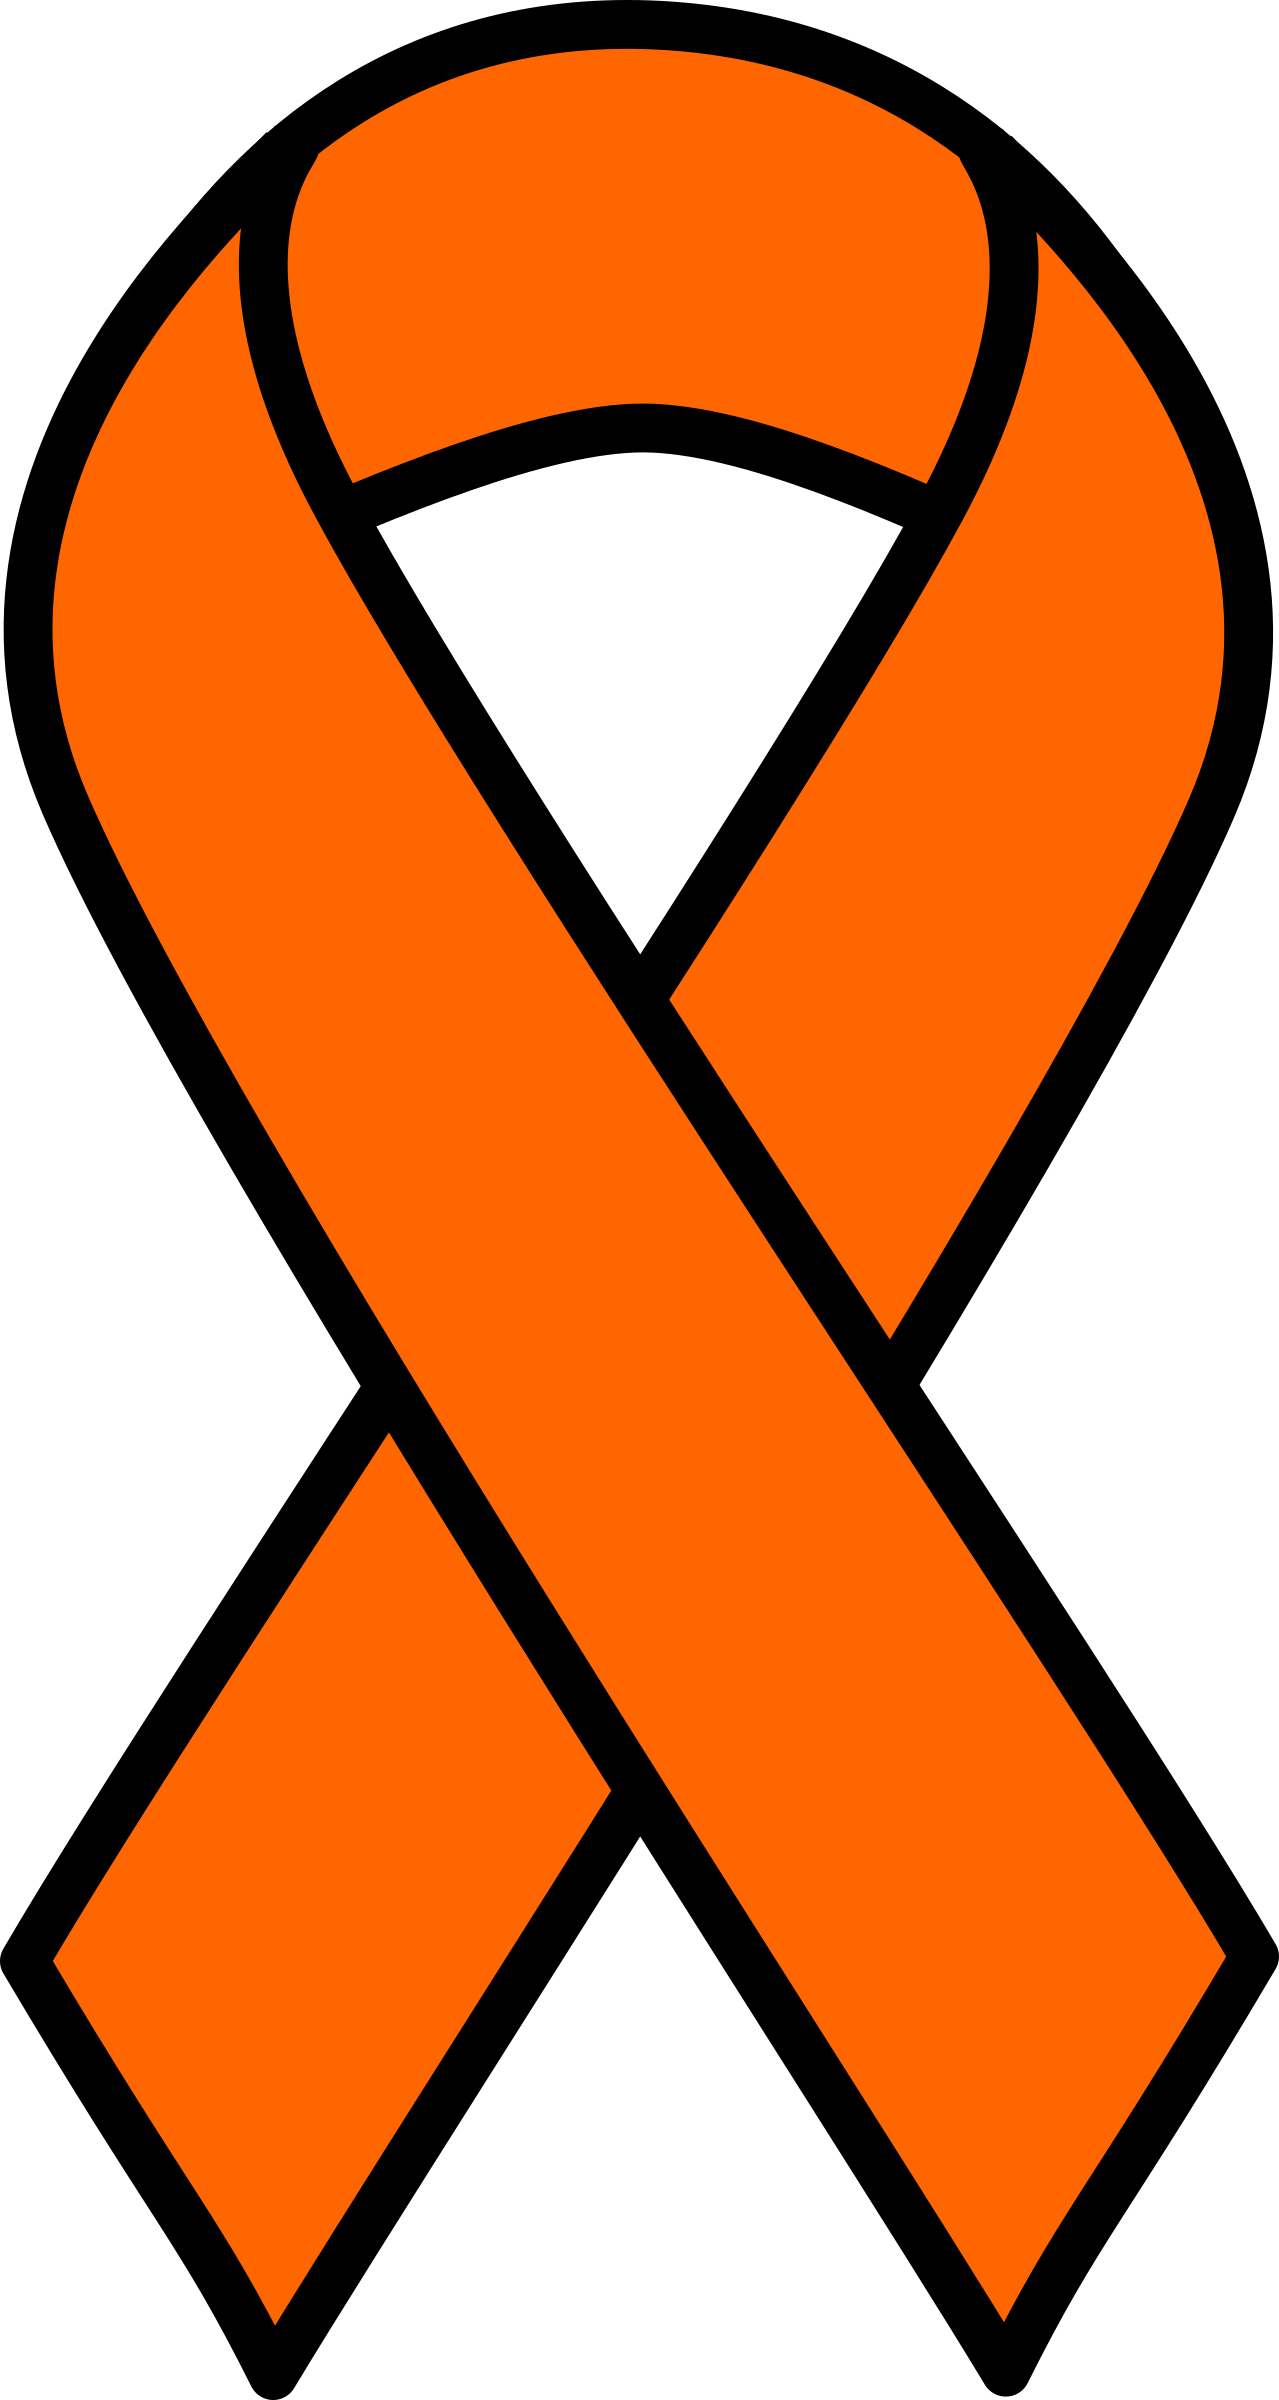 Heart cancer ribbon clipart graphic royalty free download Clipart - Orange Kidney Cancer and Leukemia Ribbon graphic royalty free download